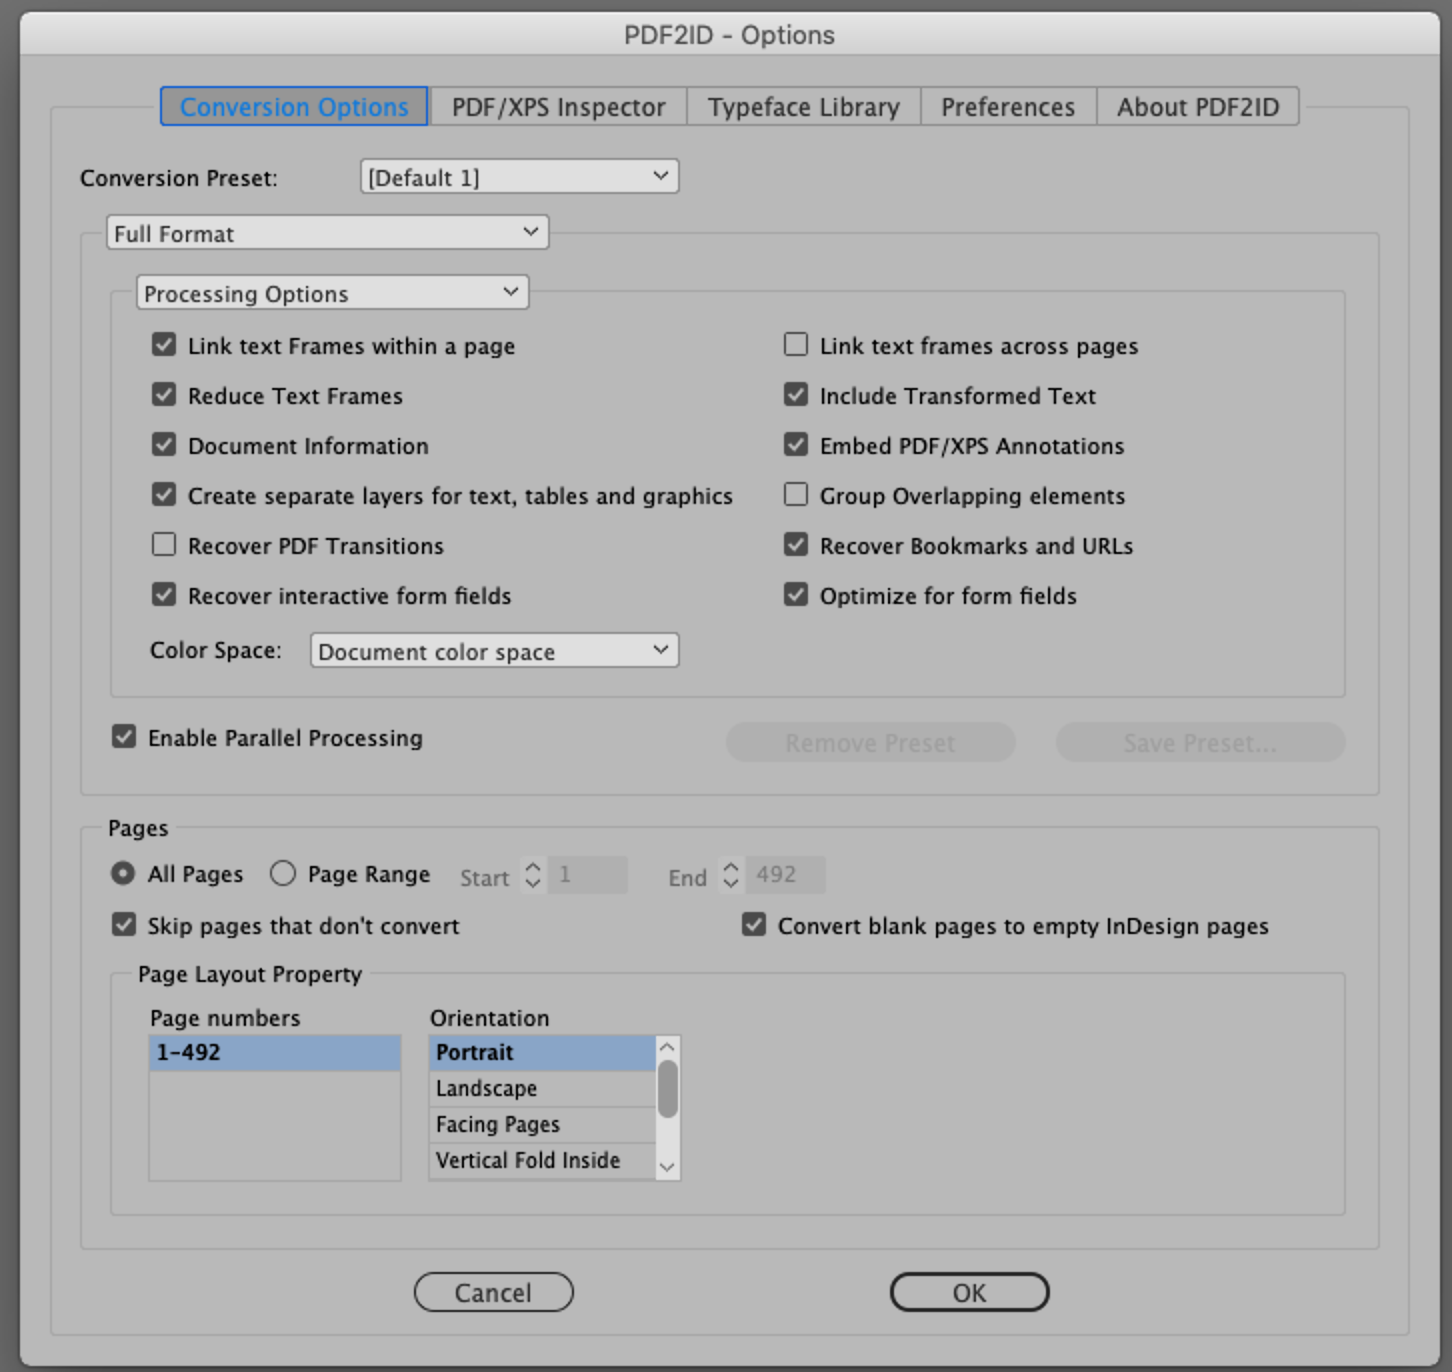 Recosoft releases PDF2ID 2020 - PDF to InDesign 2020 converter ships Image